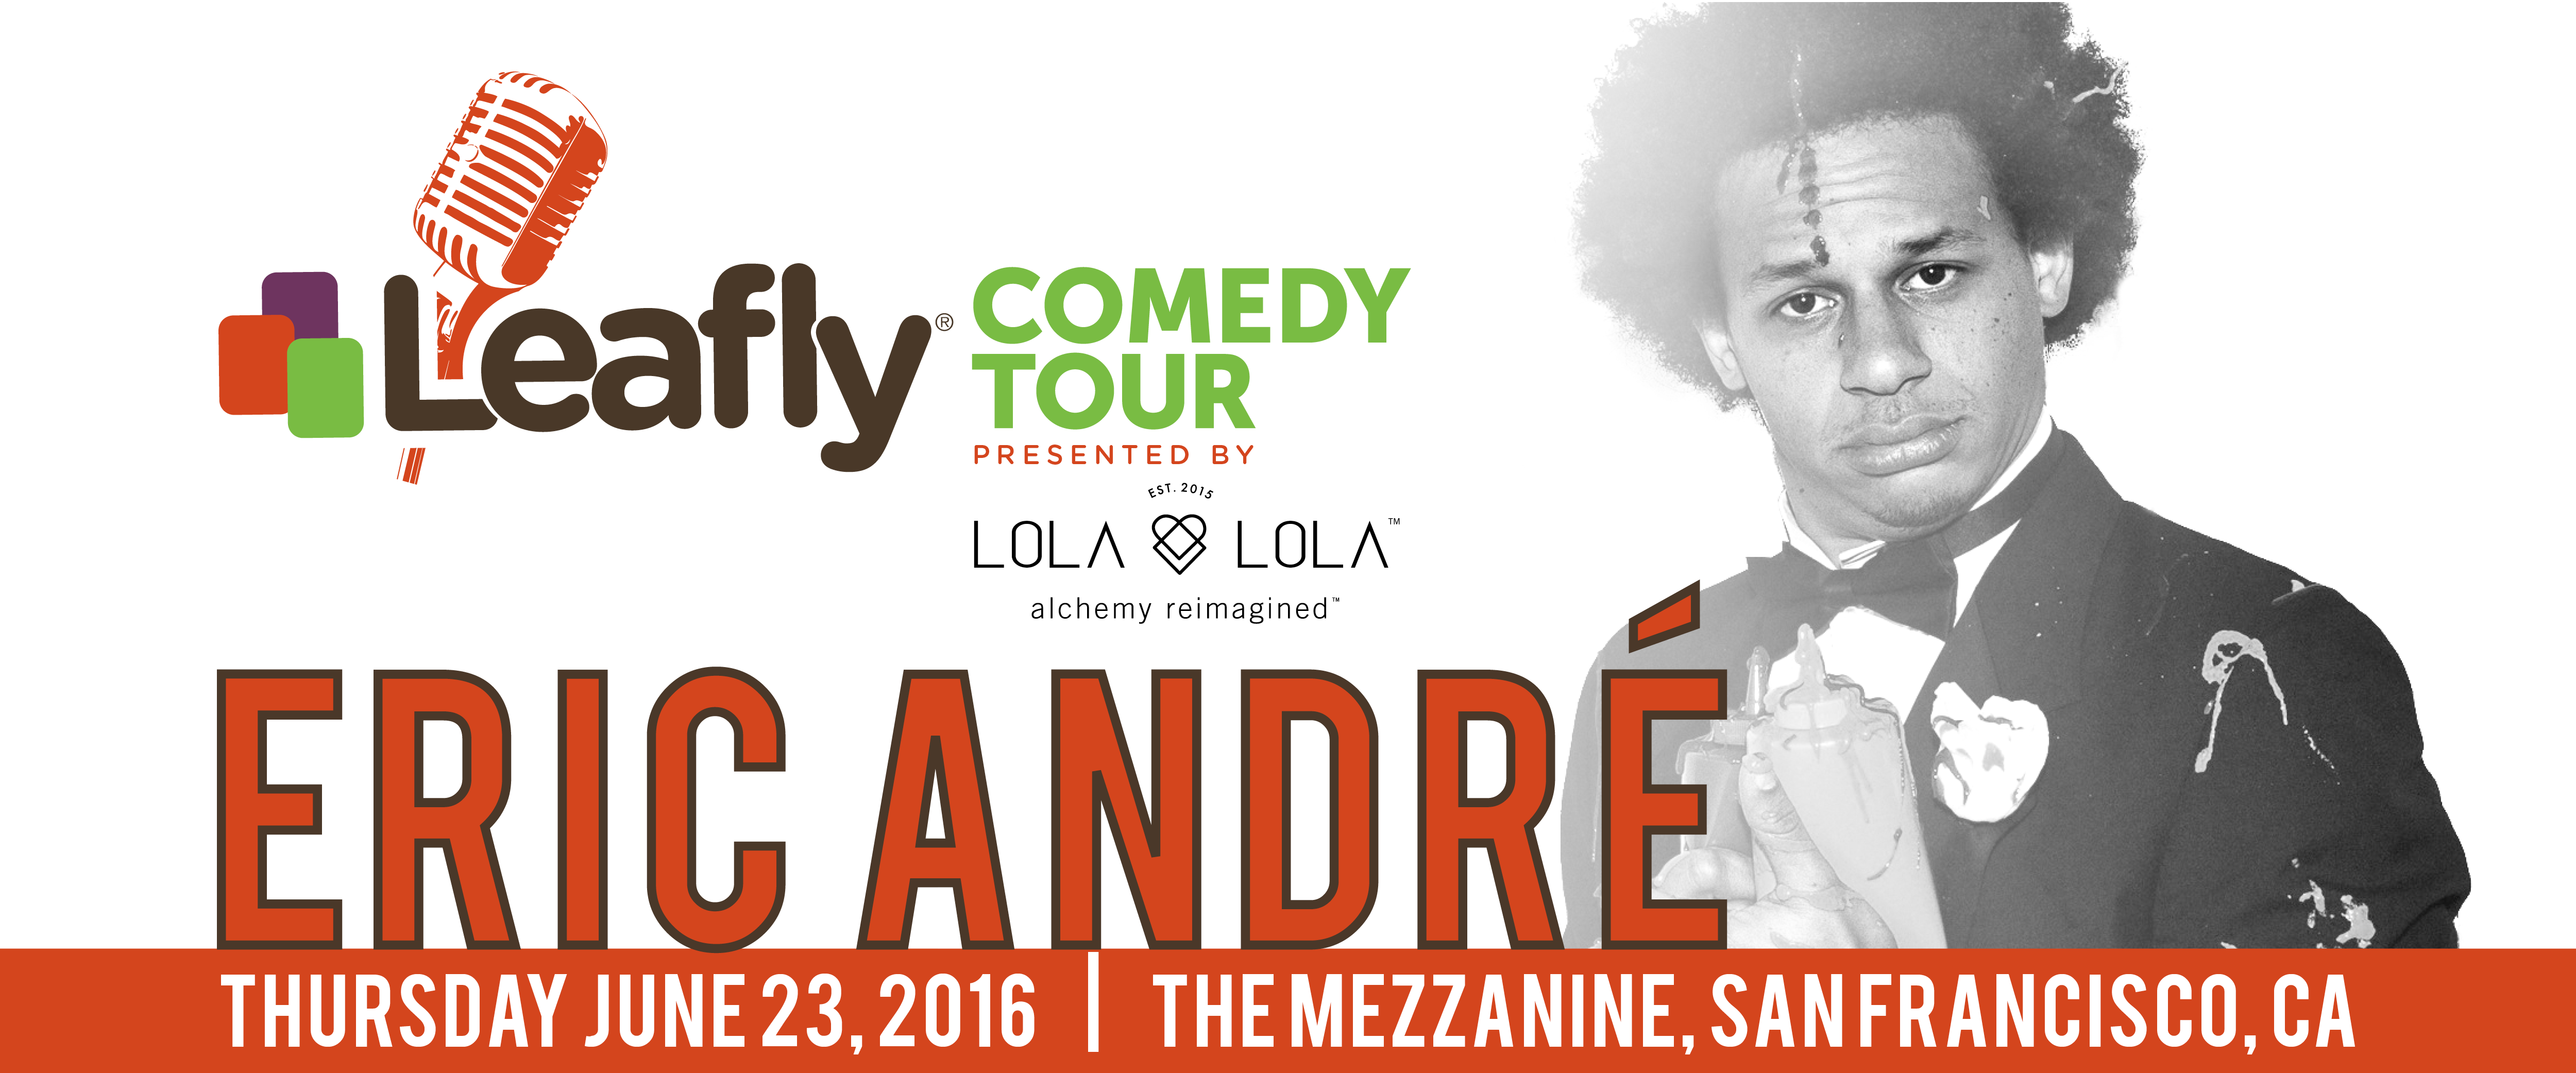 Leafly Comedy Tour San Francisco